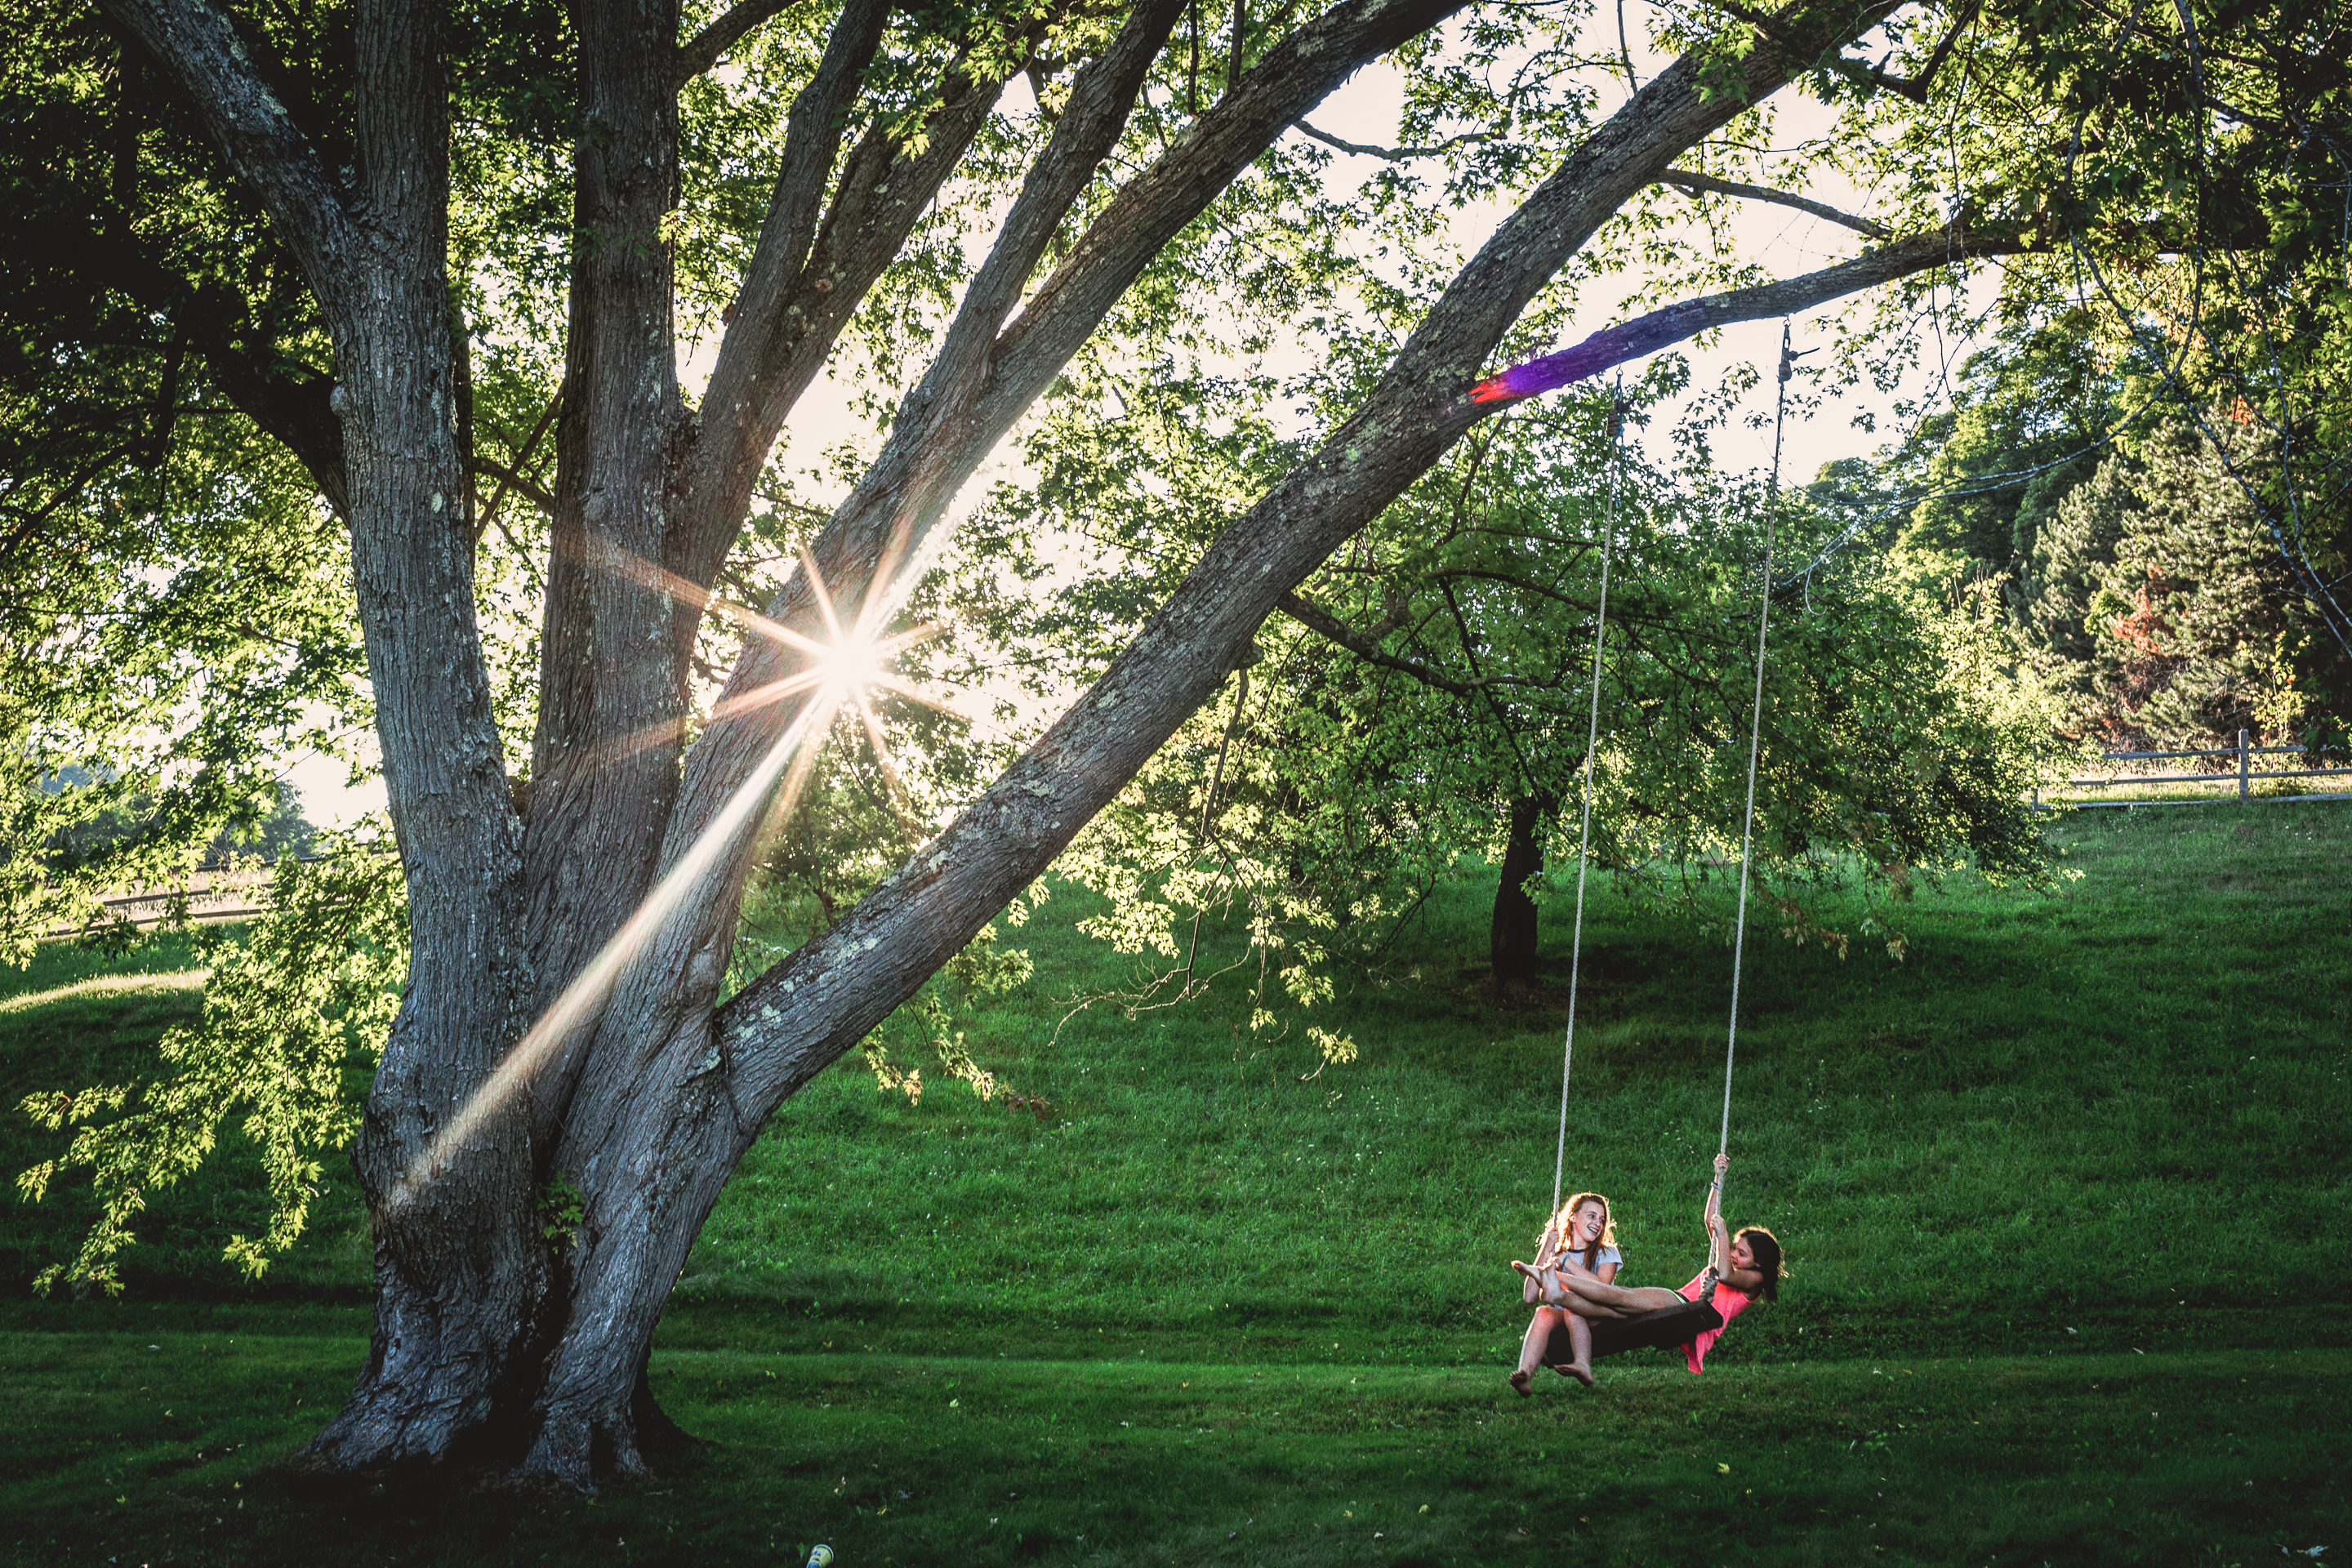 girls swinging on rope swing with sunburst in background